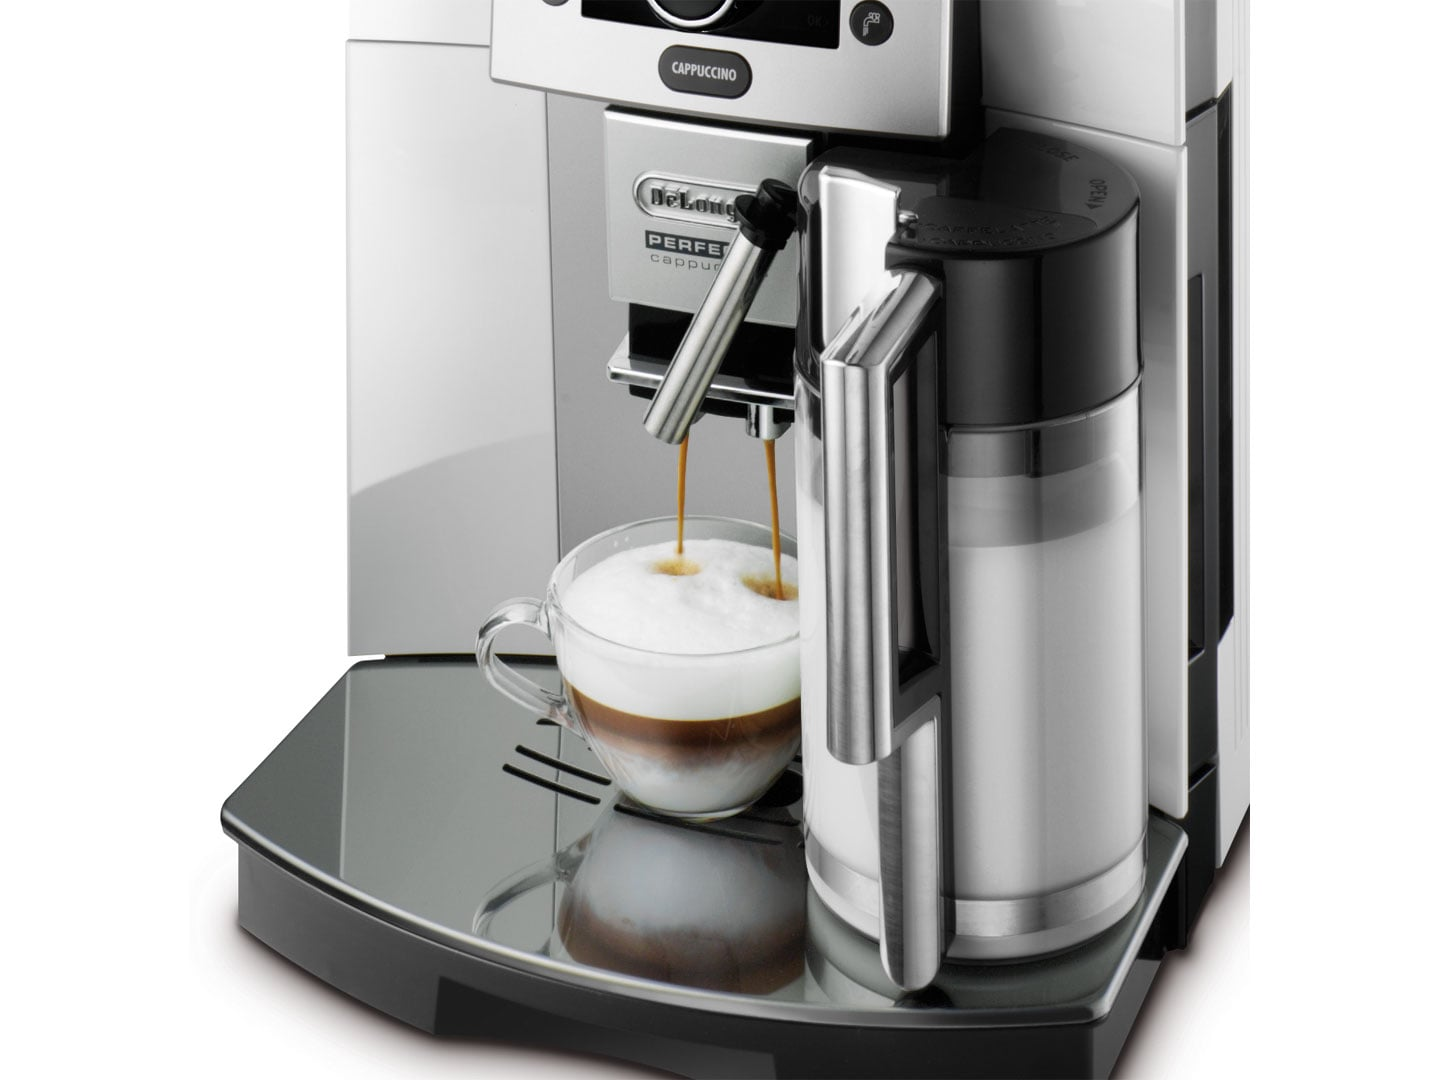 Delonghi Esam 5500 Husholdningsapparater Huis Interieur Huis Interieur 2018 [thecoolkids.us]